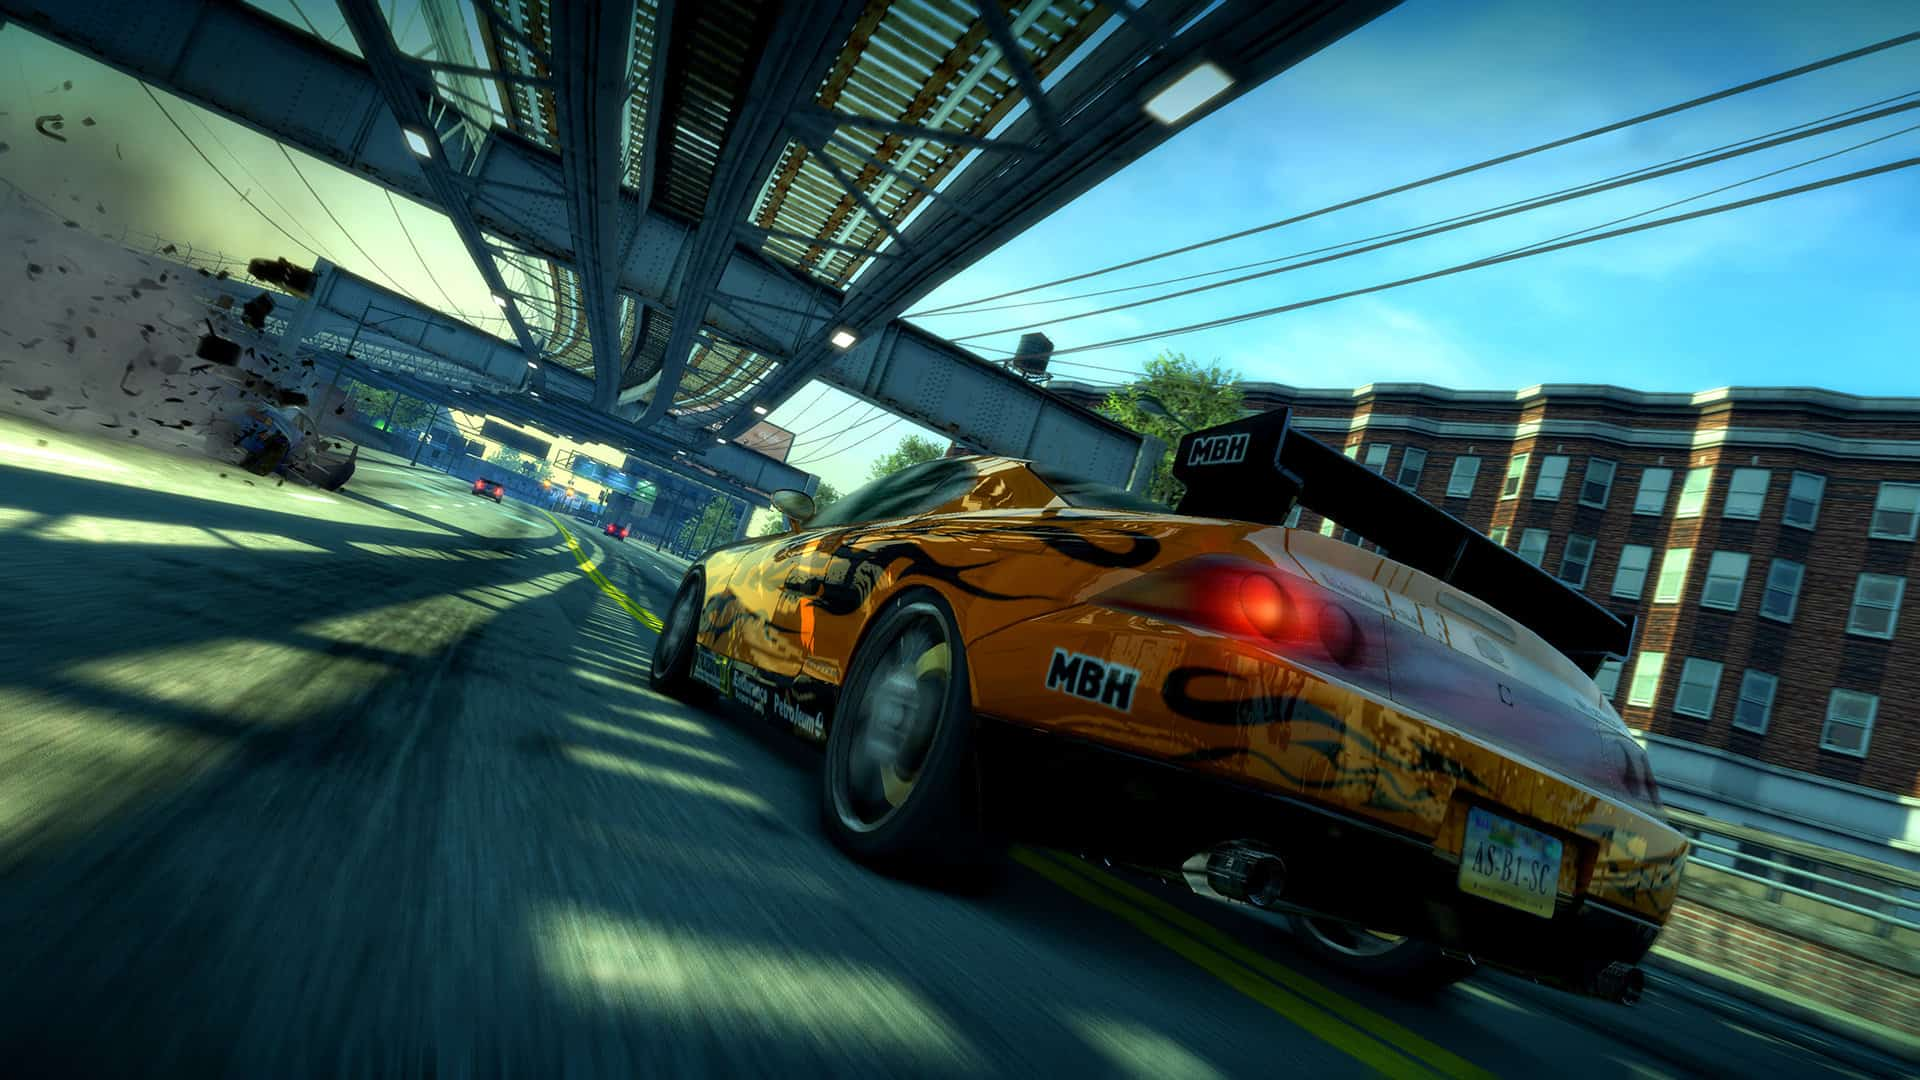 BOPR Screenshot 03 TunnelRun2 NoLogos - Annunciato Burnout Paradise Remastered